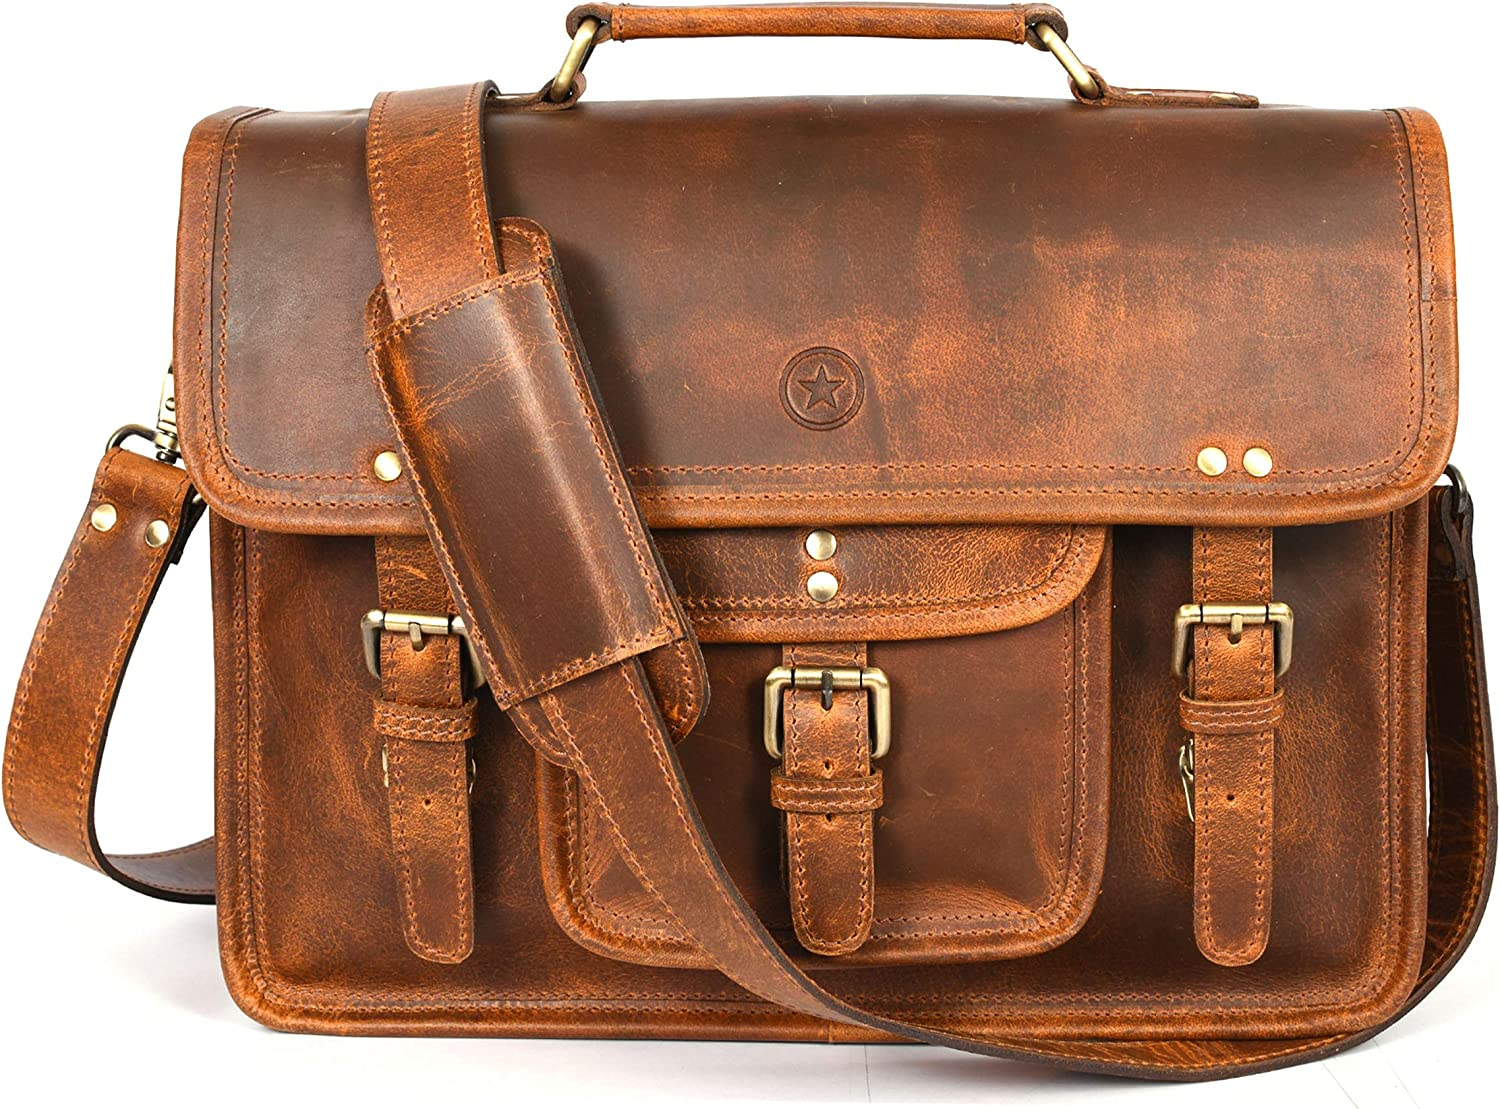 15 inch Vintage Leather Messenger Satchel Bag | Briefcase Laptop Messenger Bag by Aaron Leather